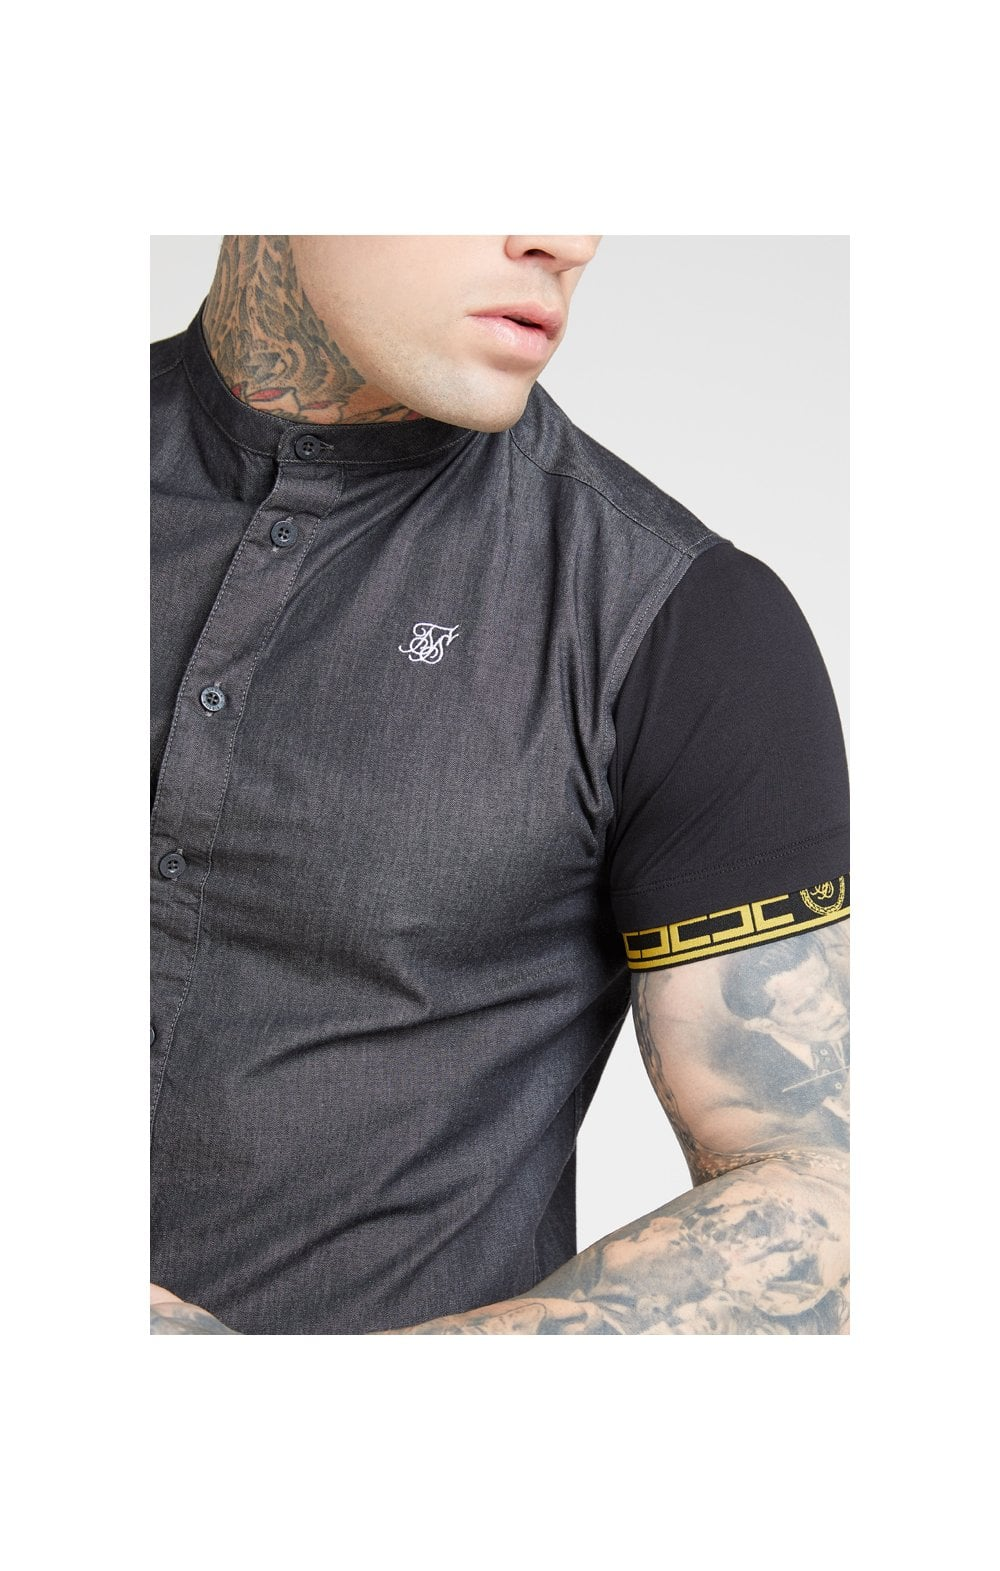 SikSilk S/S Denim Shirt – Black